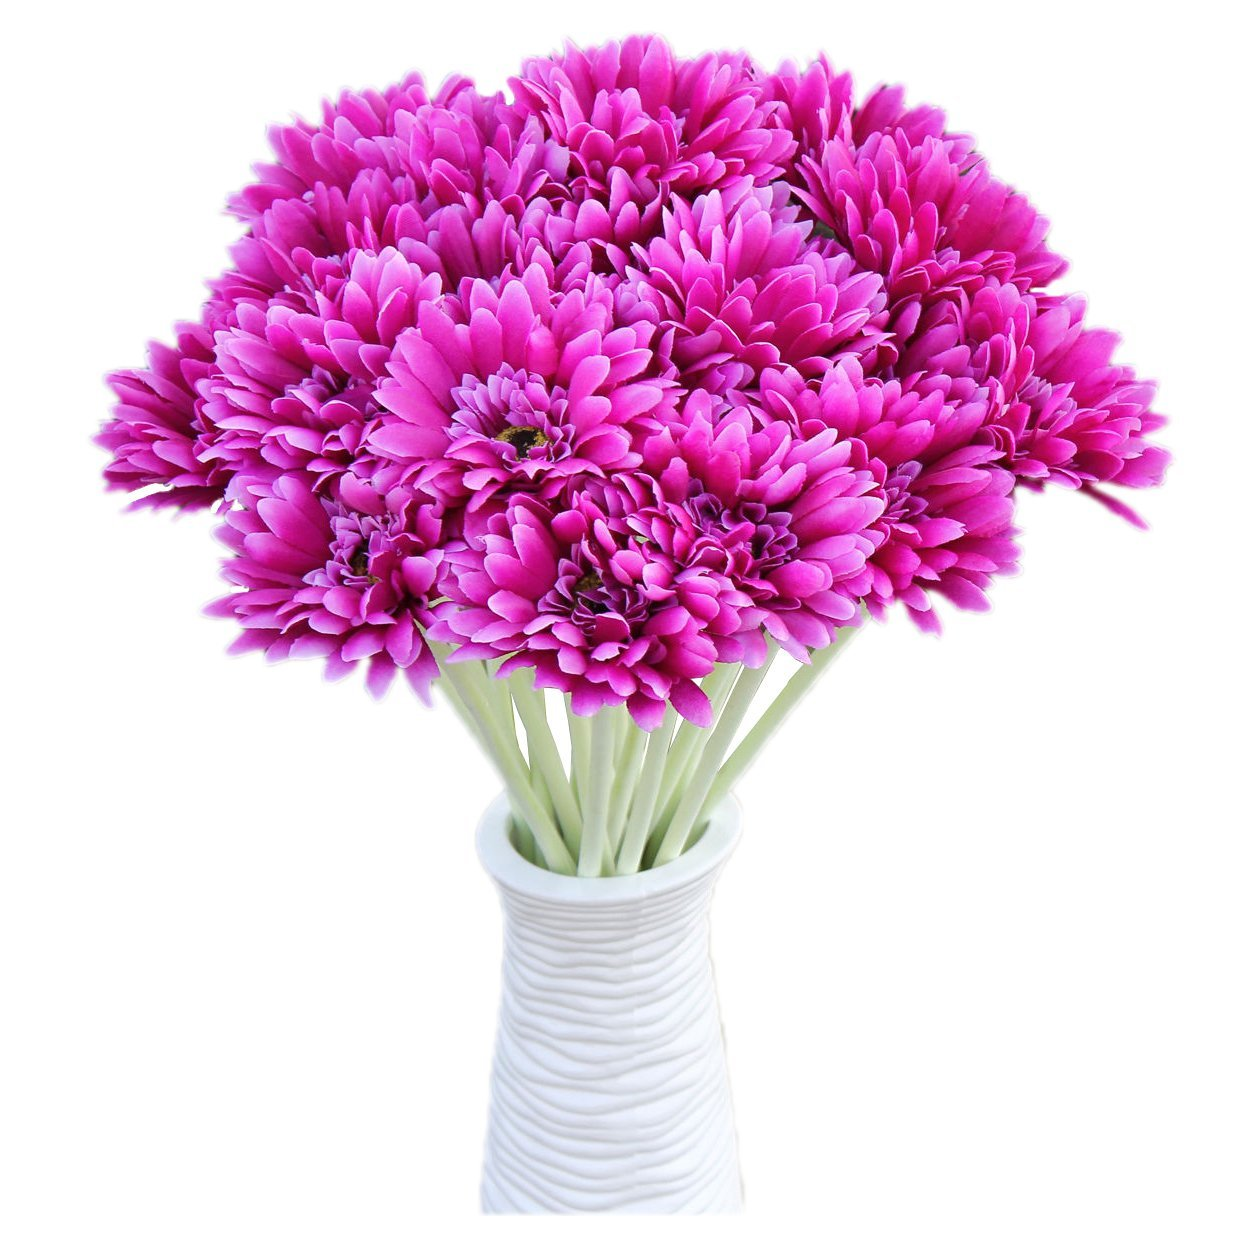 Cheap Bouquet Gerbera Find Bouquet Gerbera Deals On Line At Alibaba